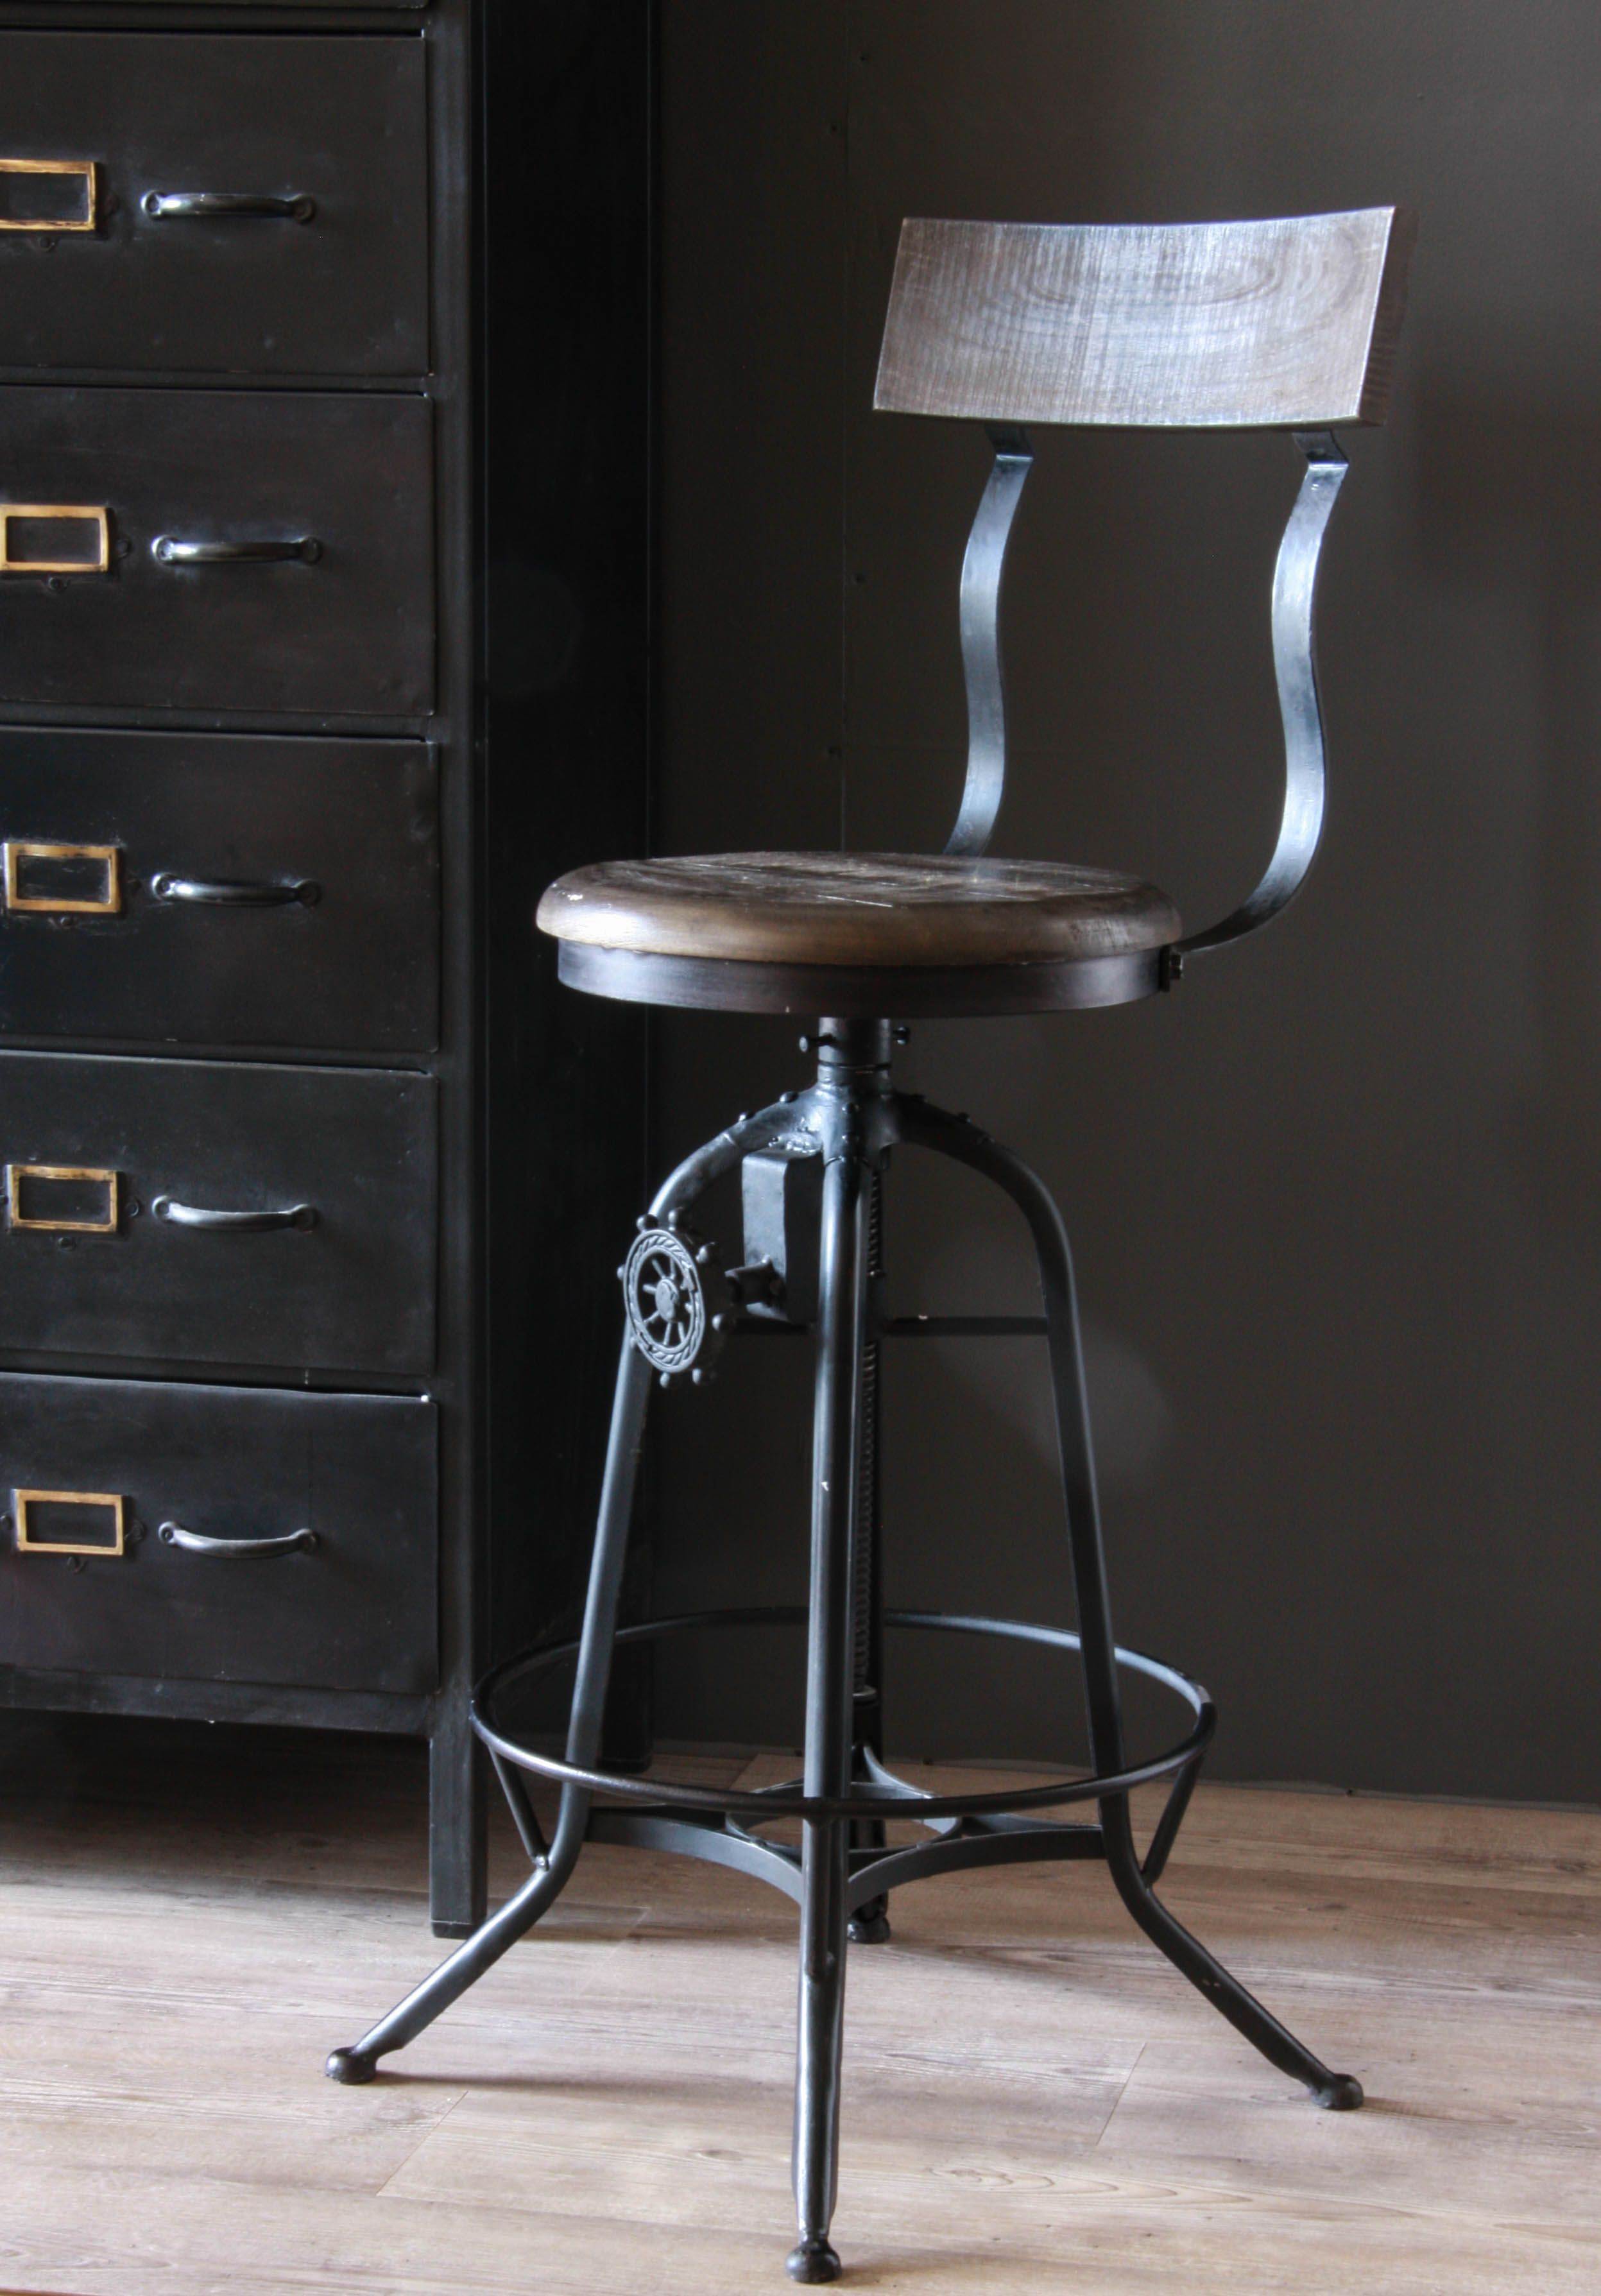 Clock House Stool With Back Rest Buy Now From Wheresaintsgo Co Uk For 175 00 Unique Furniture Design Chair Style Mod Furniture